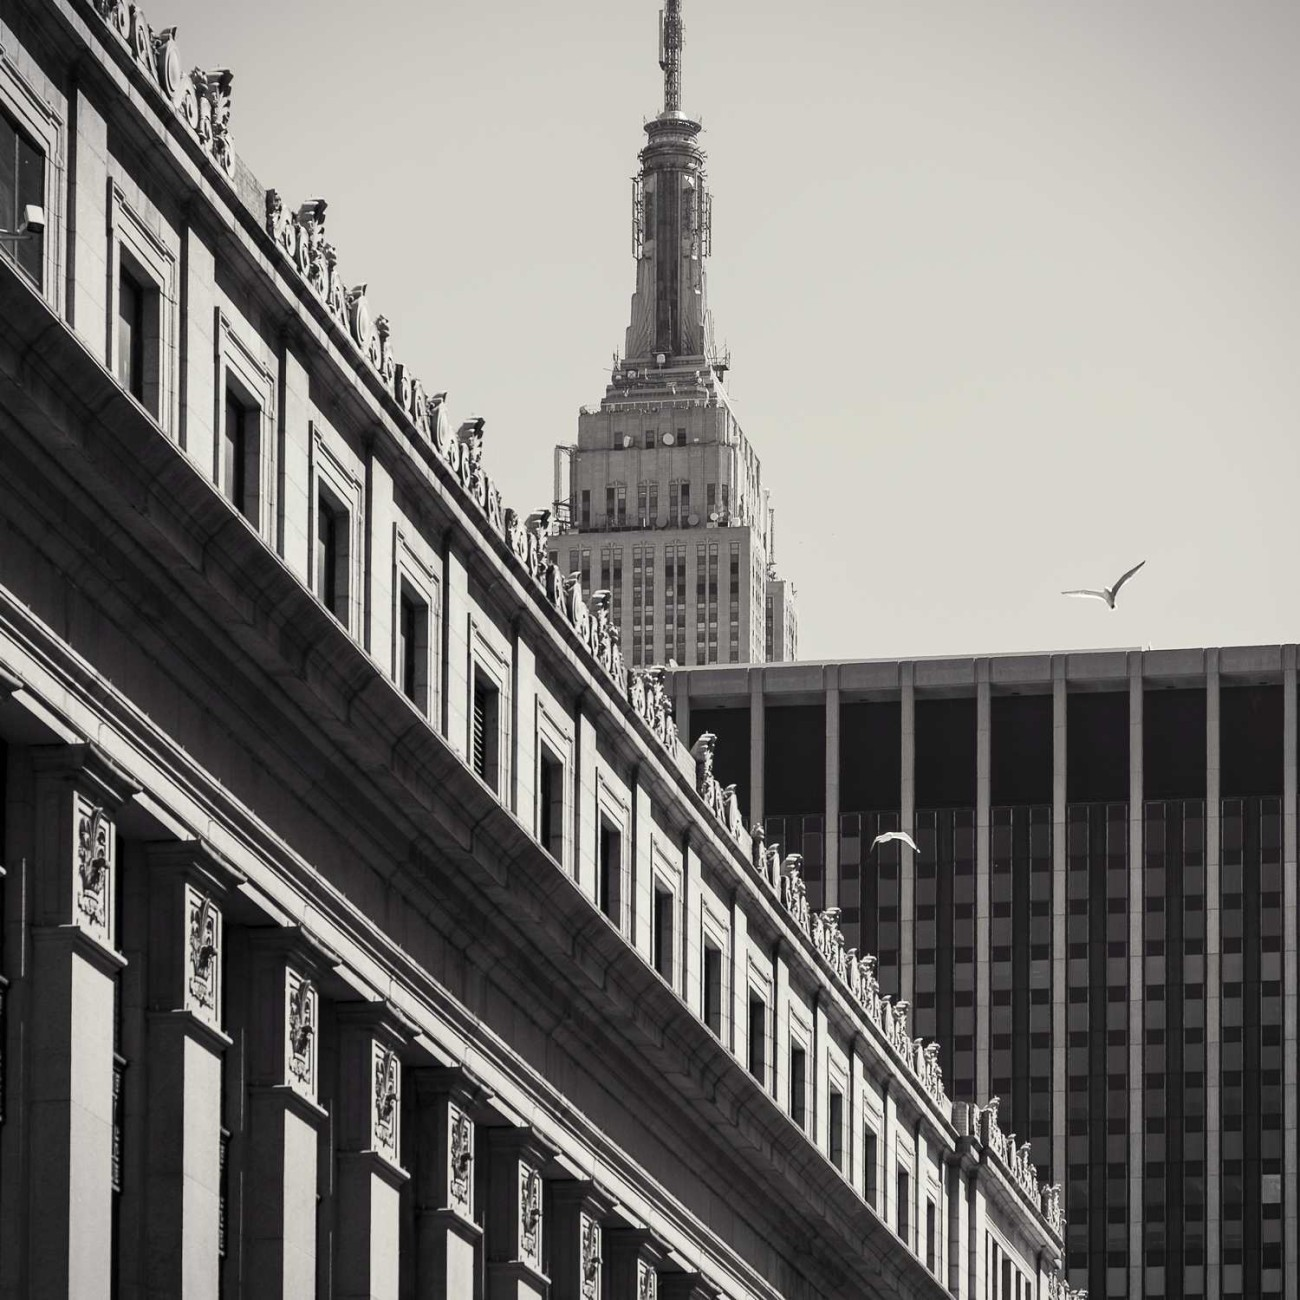 Empire State Building and post office building, New York, 2014